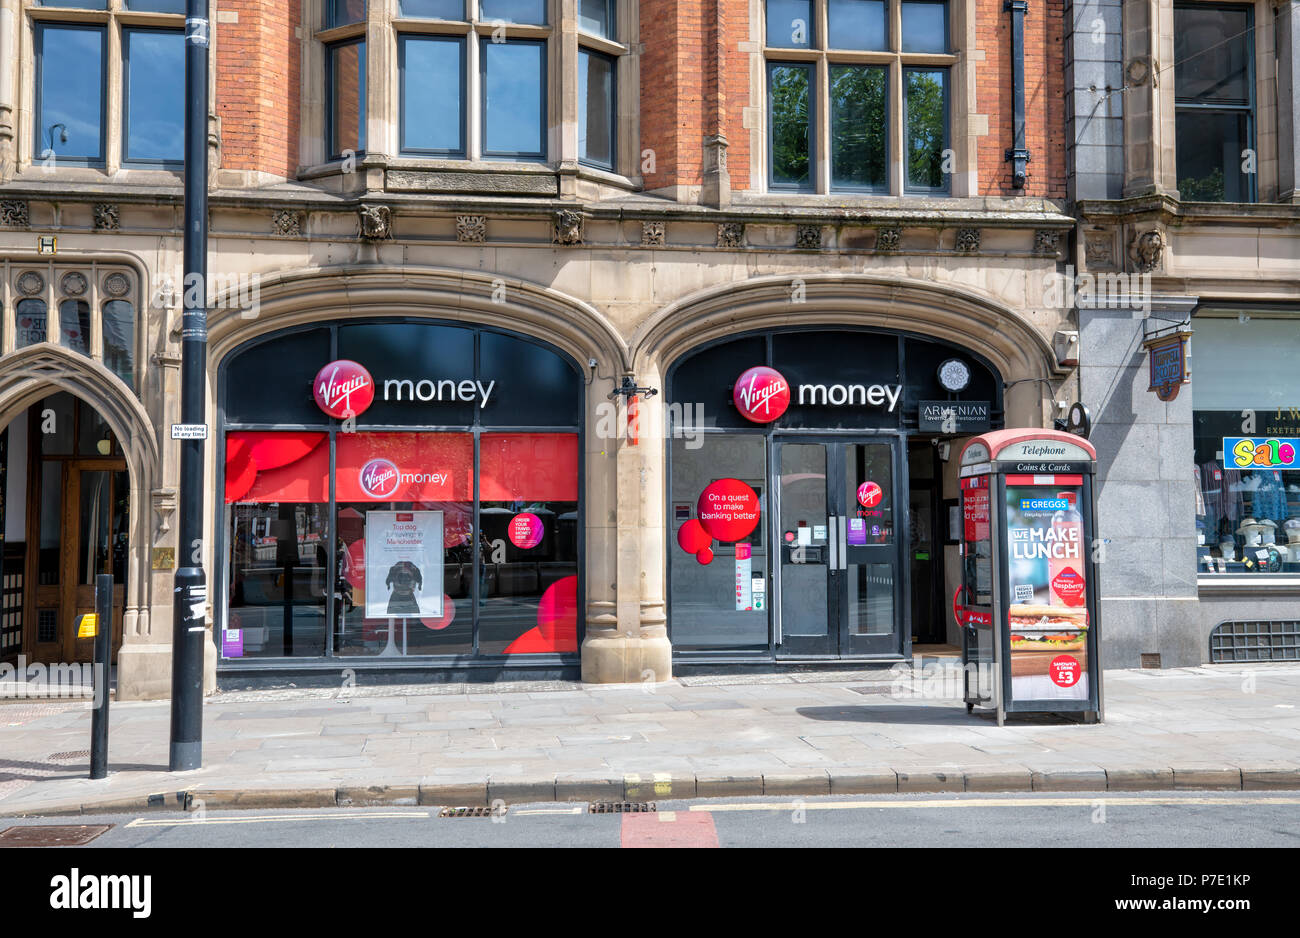 A branch of Virgin Money in the centre of Manchester, UK - Stock Image